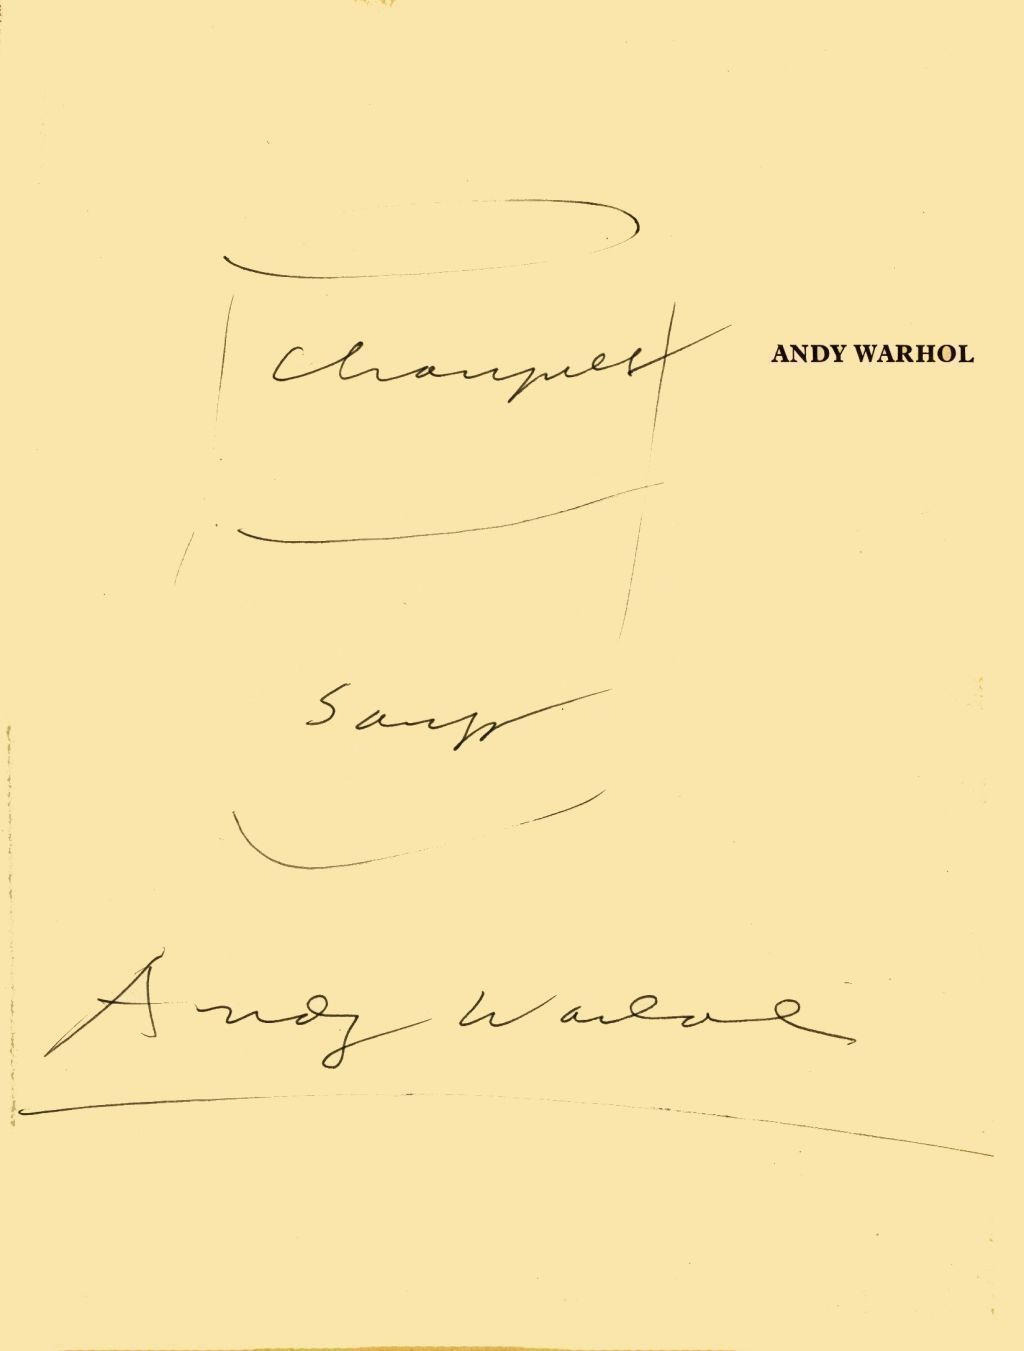 art from marcel duchamp all the way to andy warhol writework autograph and sketch by andy warhol